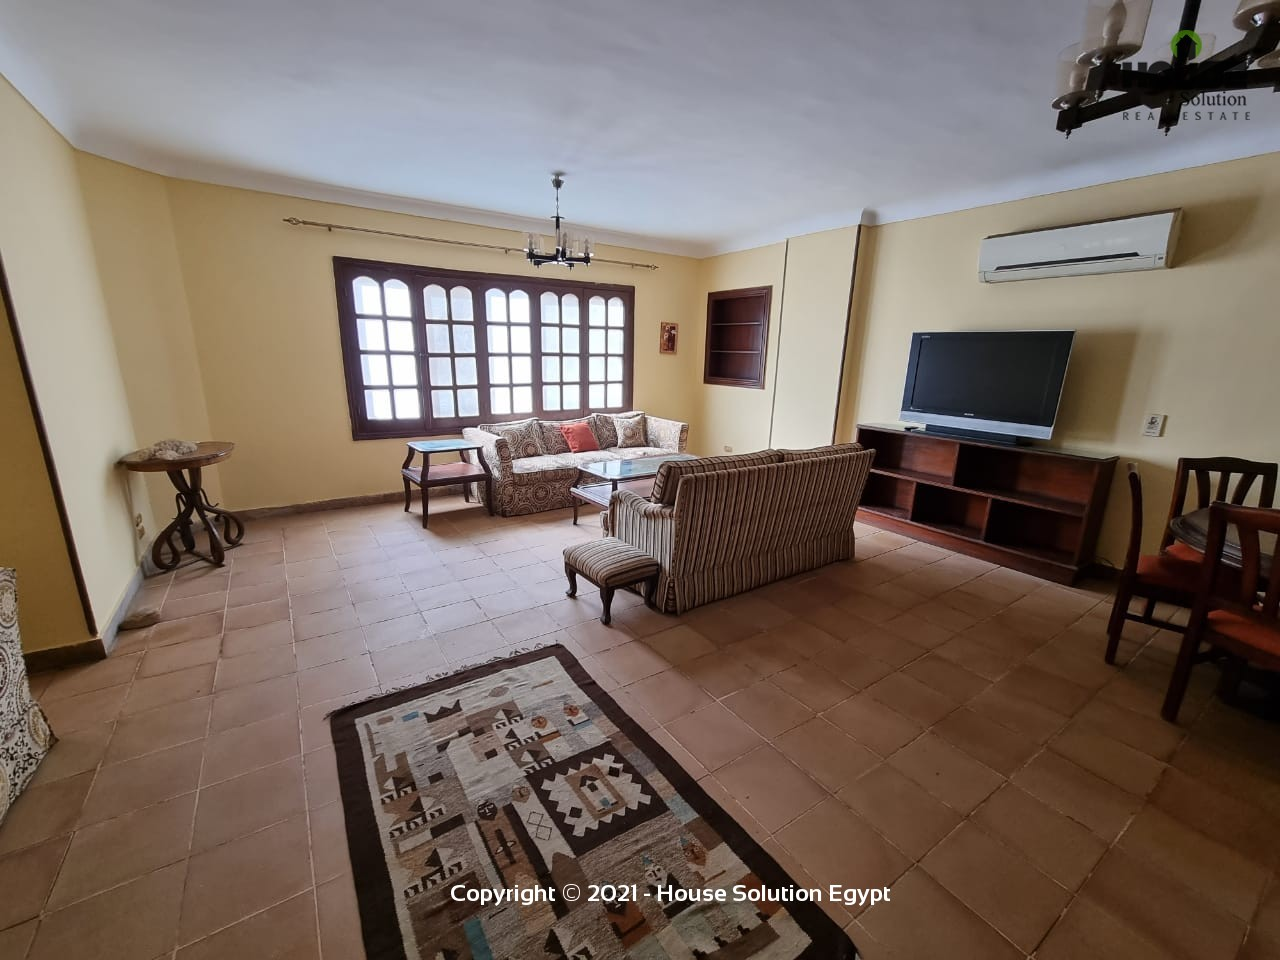 Splendid Furnished Apartment For Rent In Degla El Maadi Cairo Egypt - 4940 Featured Image